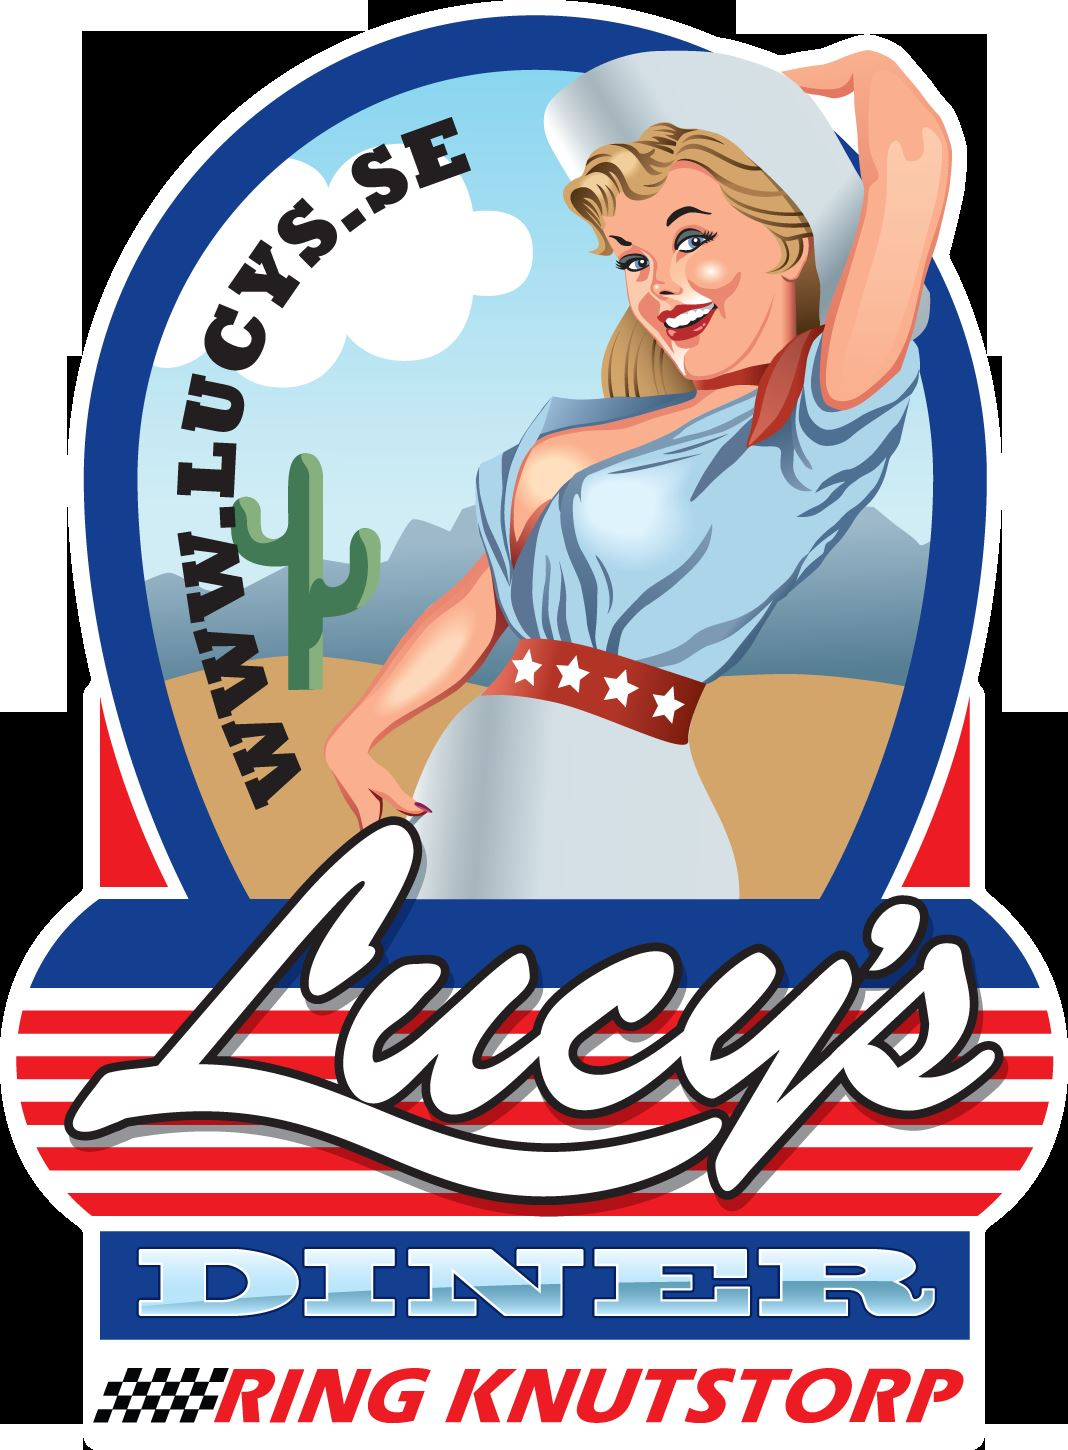 Lucy's Diner